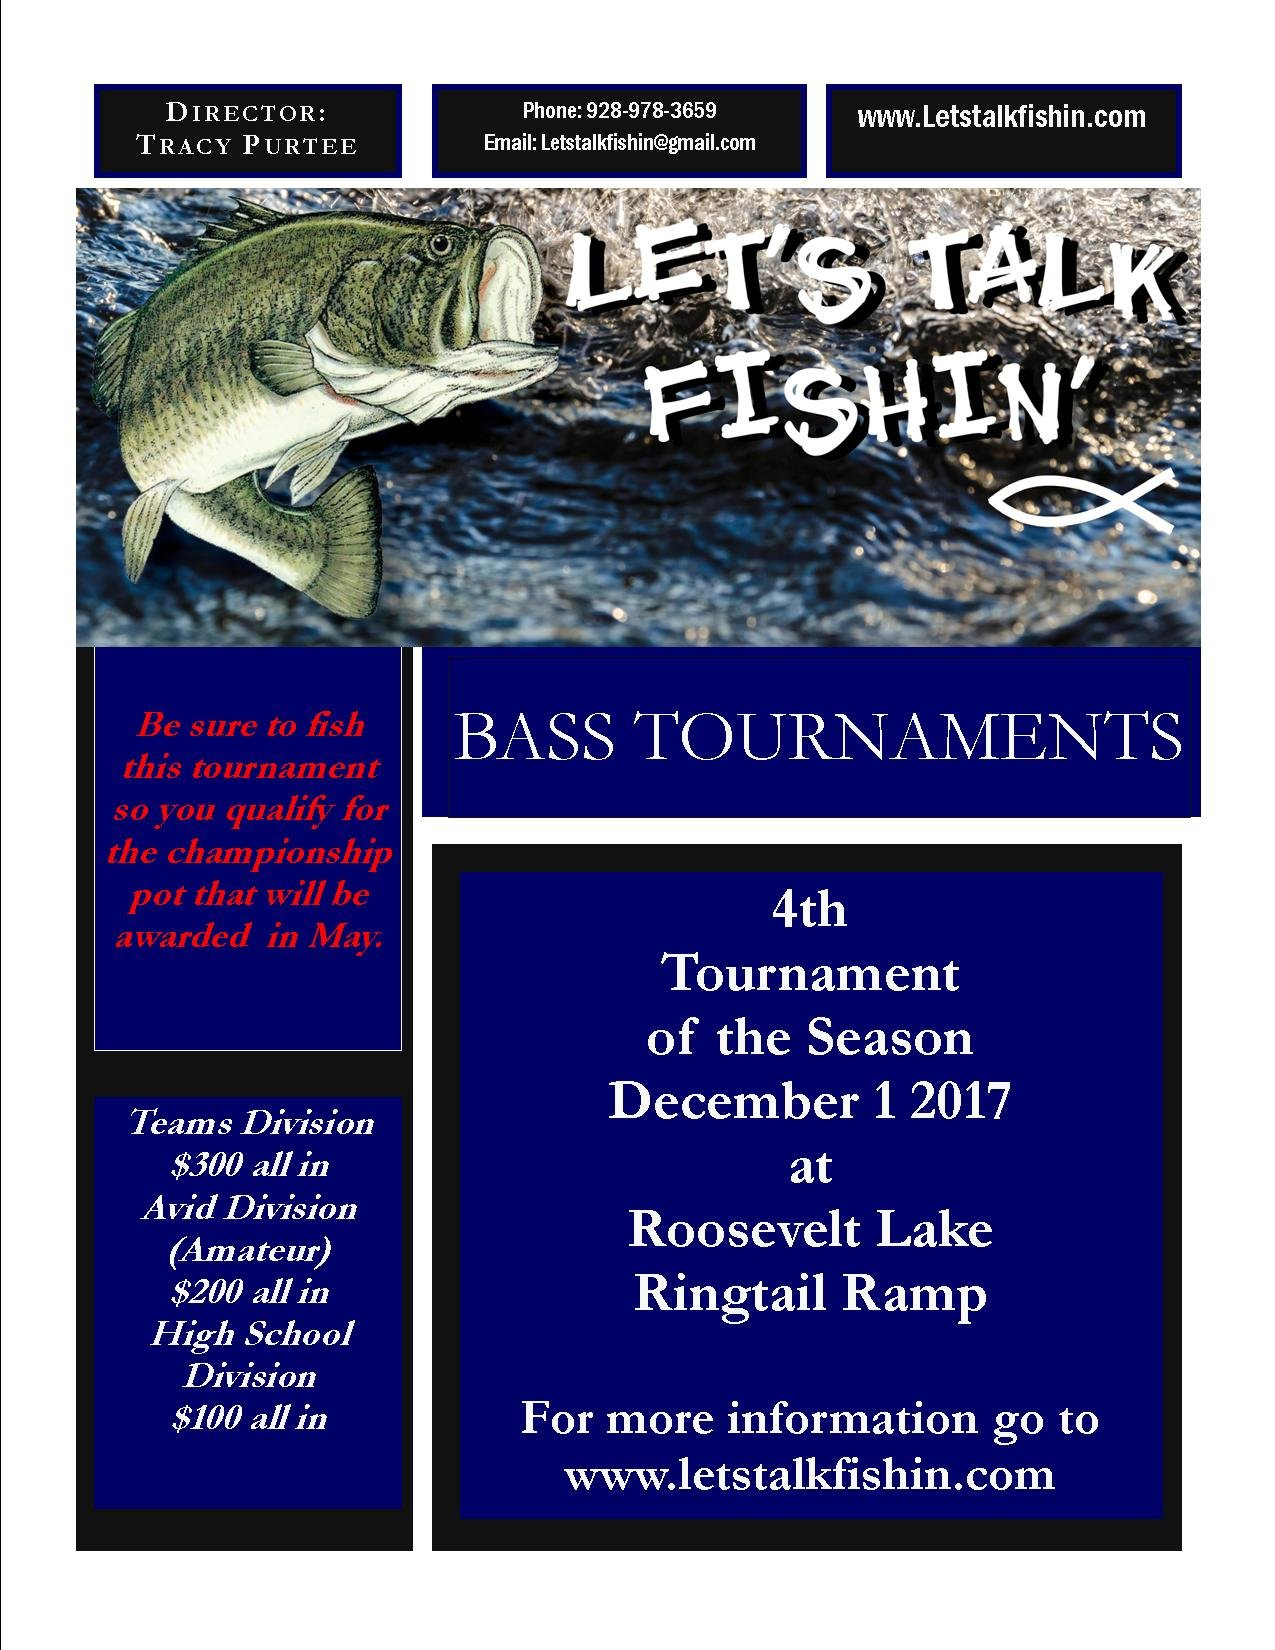 Click image for larger version  Name:4th Tournament.jpg Views:1822 Size:285.4 KB ID:96770